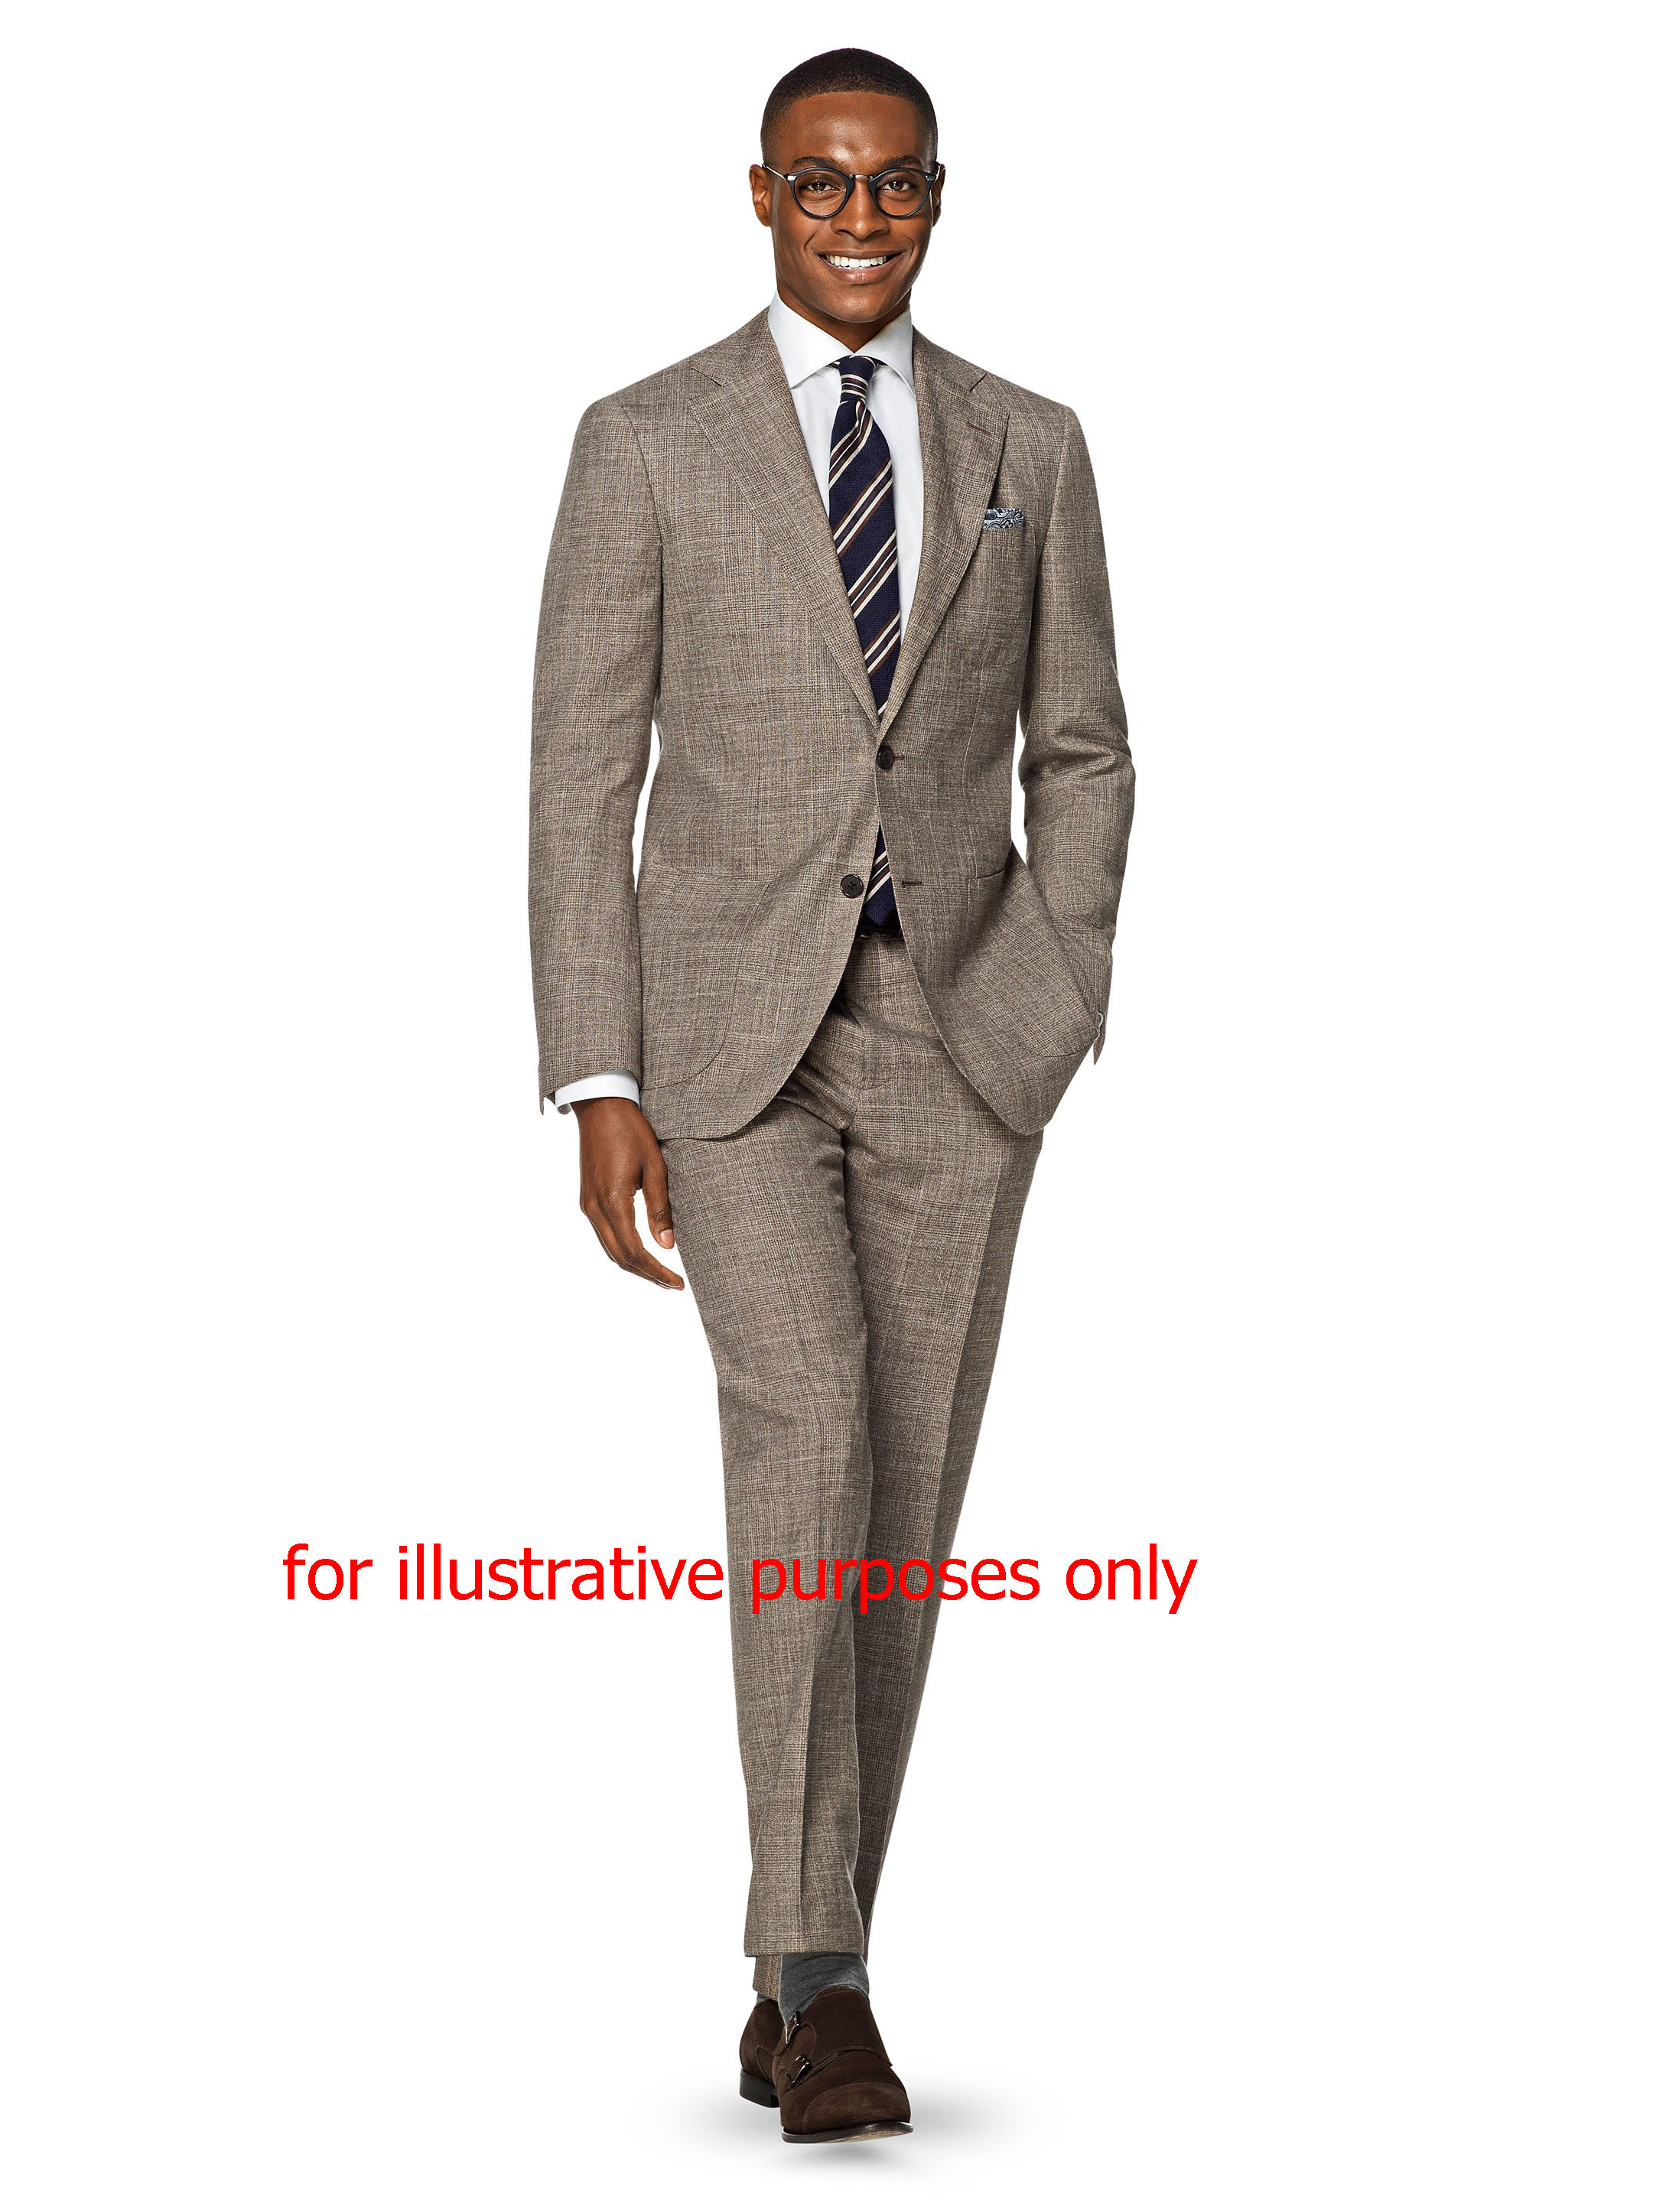 Suits_Brown_Check_Hudson_P5131_Suitsupply_Online_Store_1.jpg